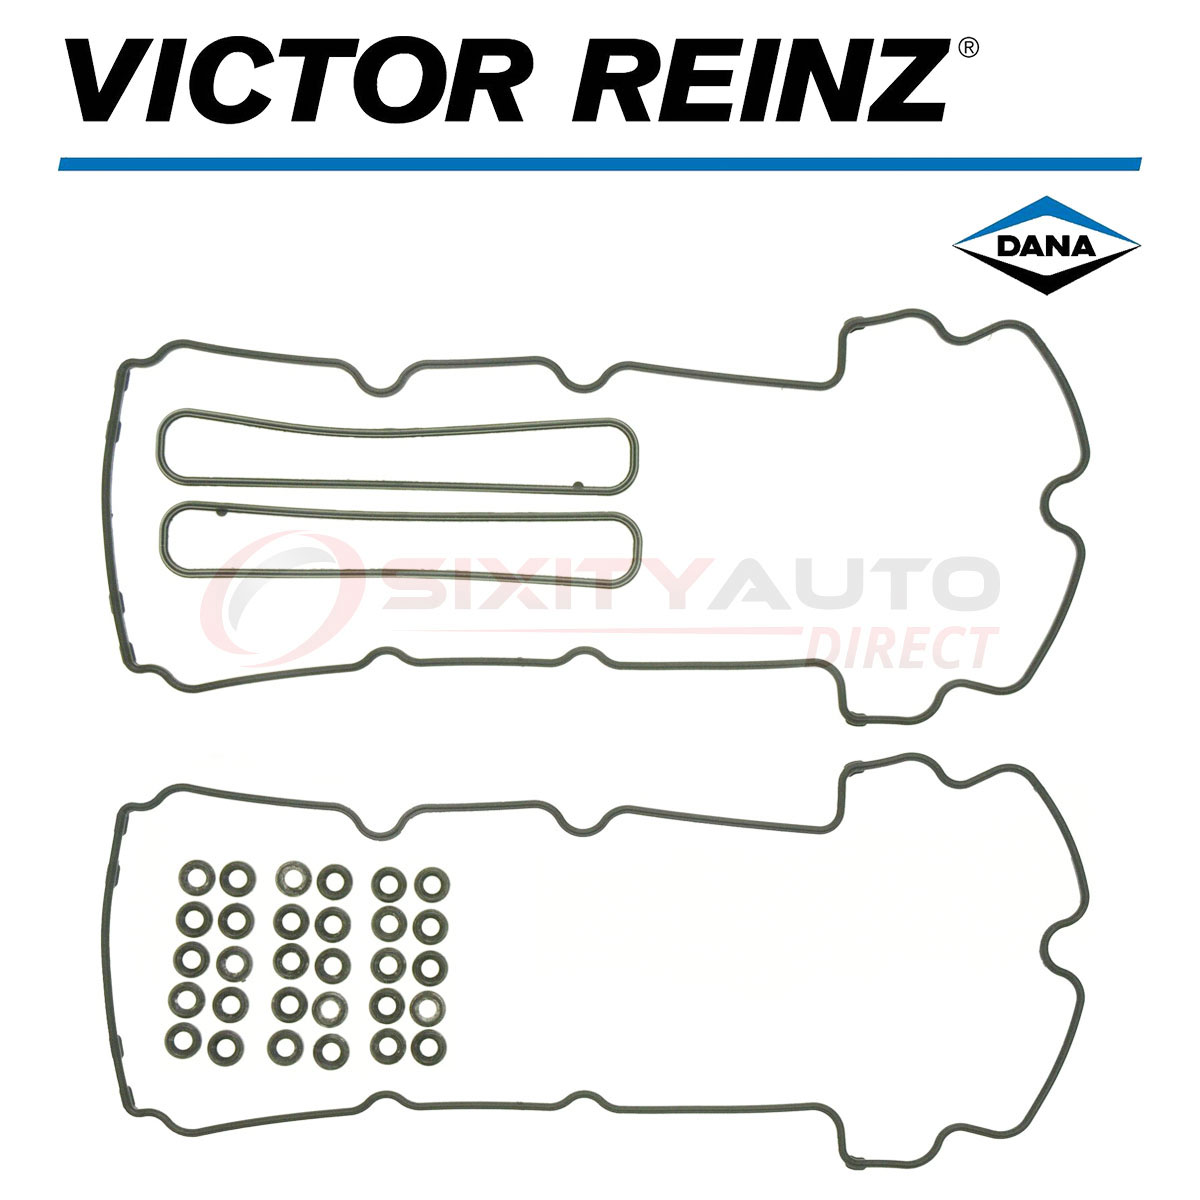 Victor Reinz Valve Cover Gasket Set for 2000-2002 Jaguar S